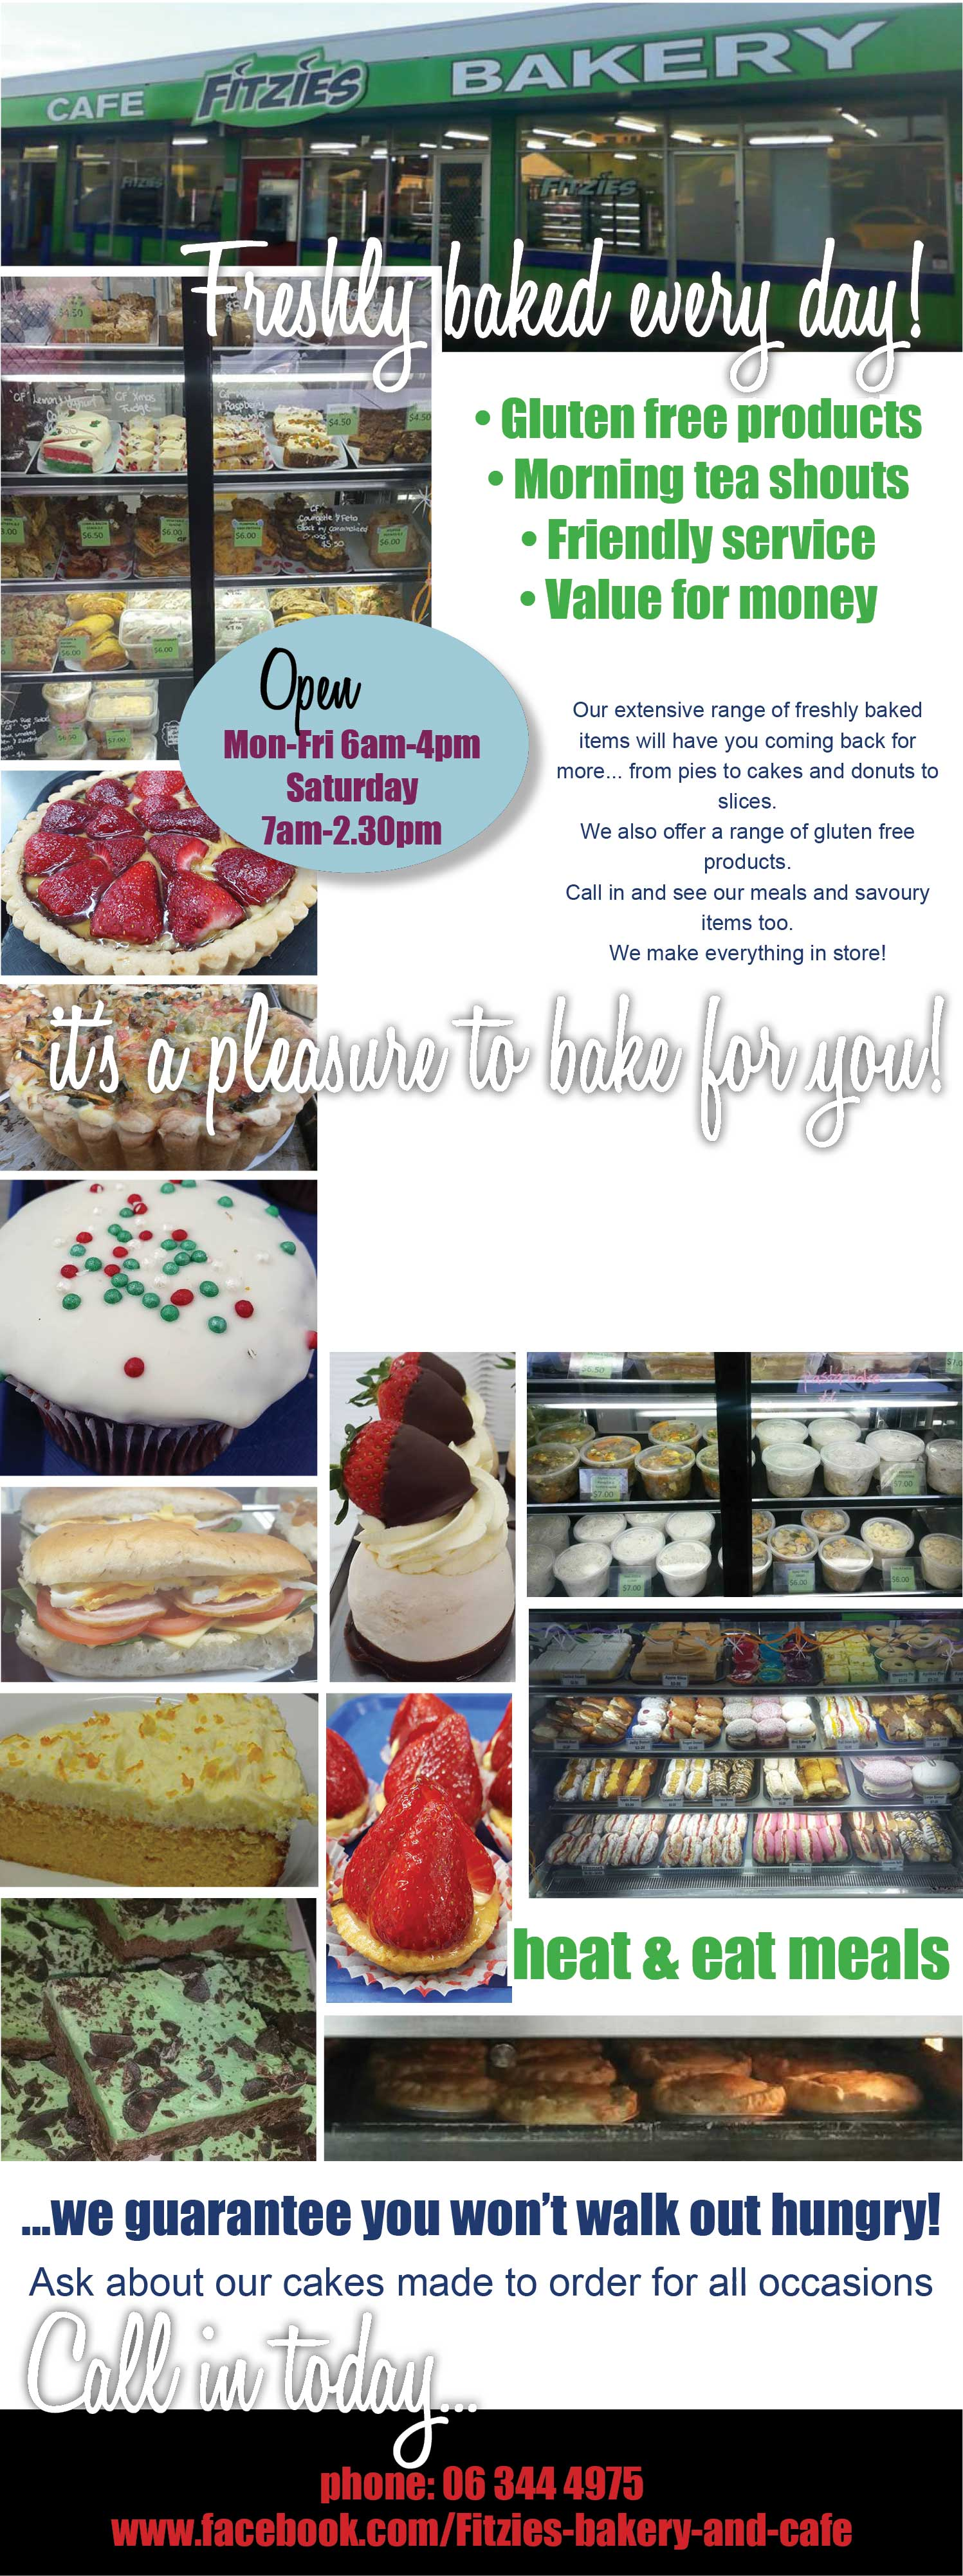 Fitzies Cafe & Bakery, Wanganui. Gluten free products, morning tea shouts, pies, sandwiches, ready made meals, cakes, slices, freshly baked everyday, dine in or takeaway.